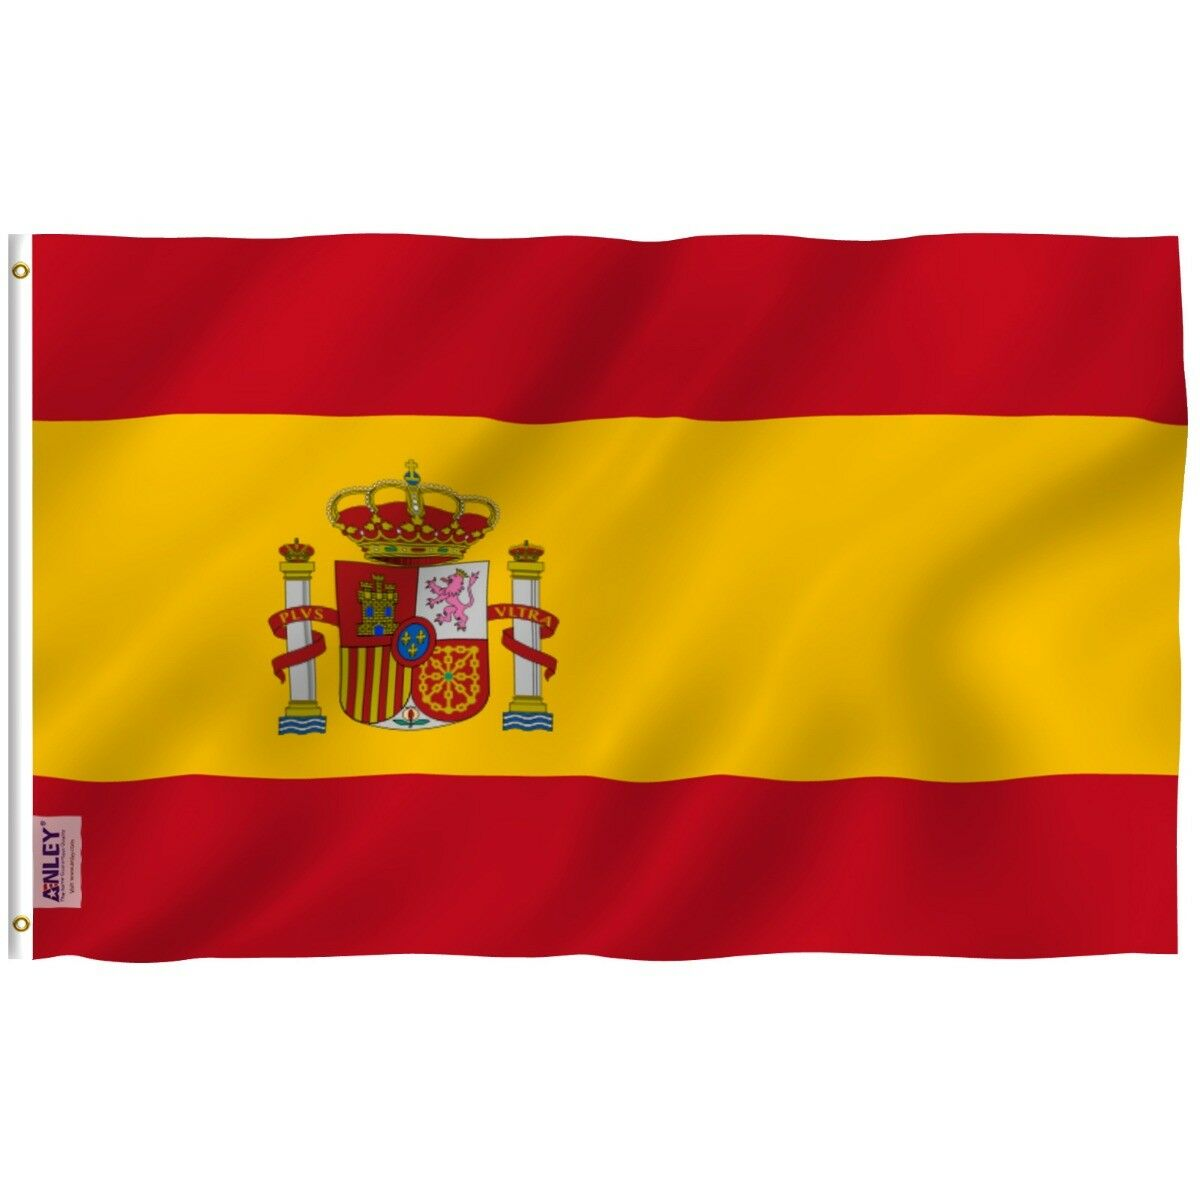 Anley Fly Breeze 3x5 Foot Spain Flag Spainish National Flags